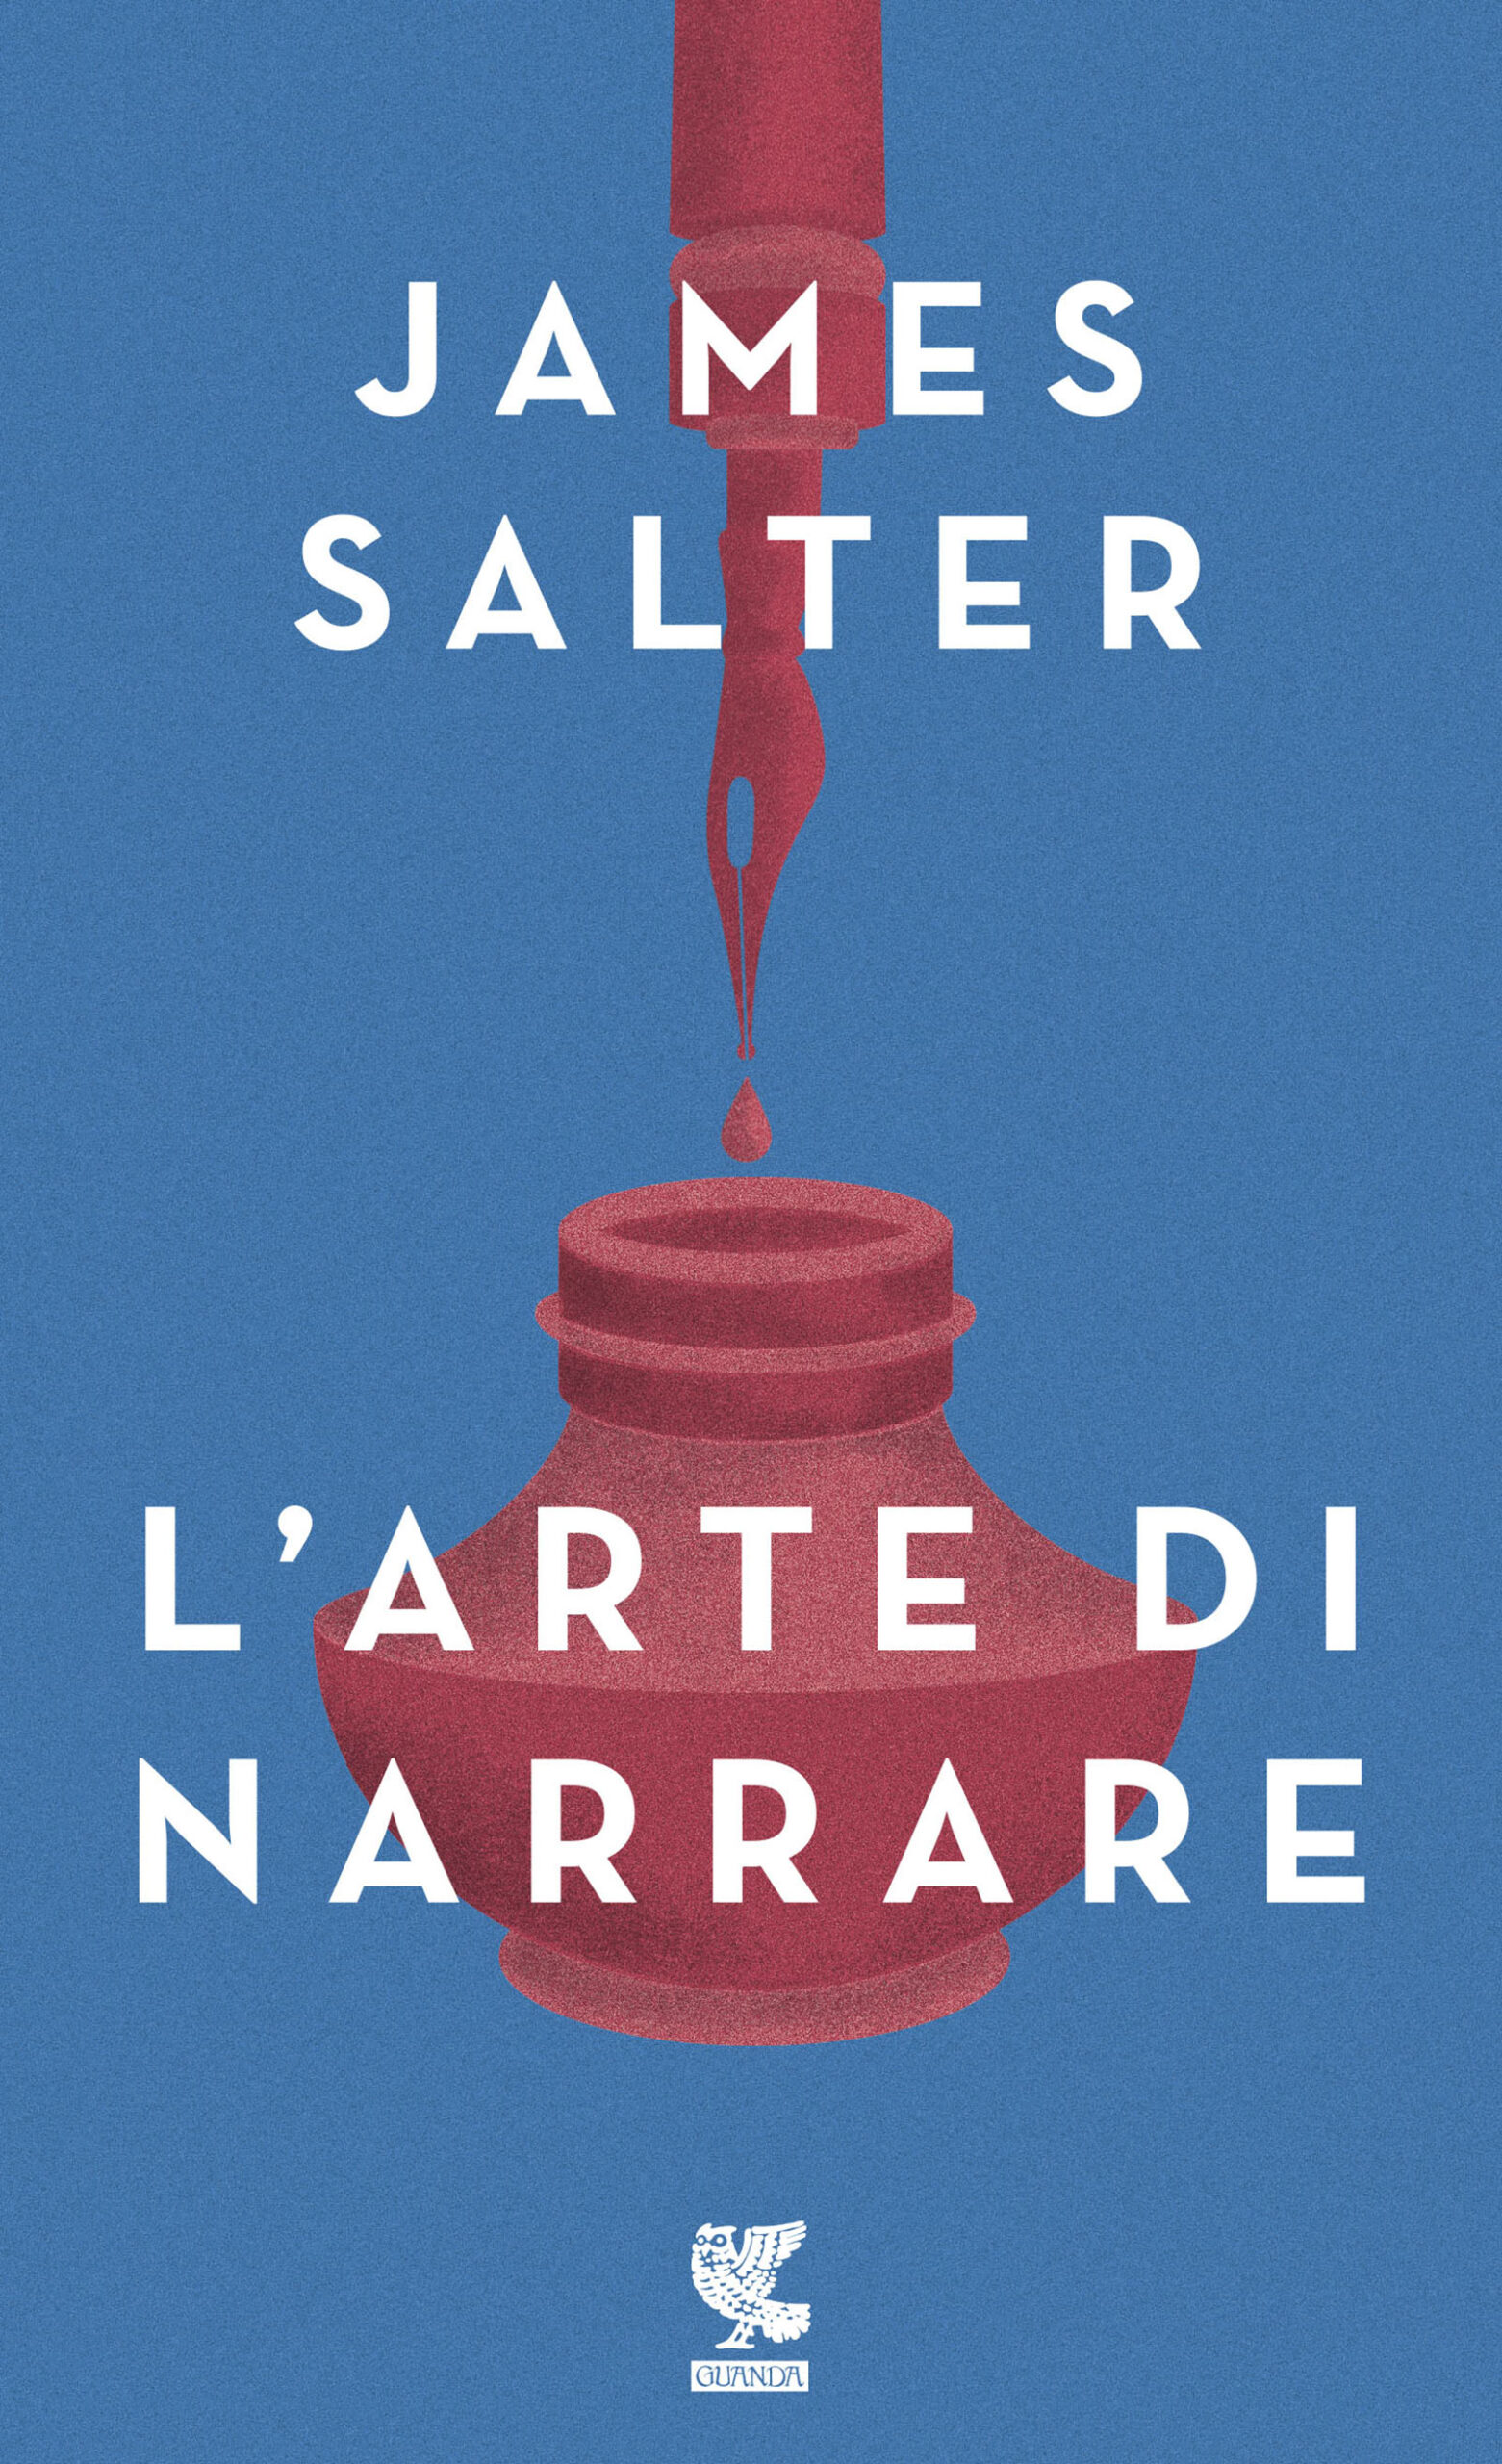 recensione - james salter - l'arte di narrare